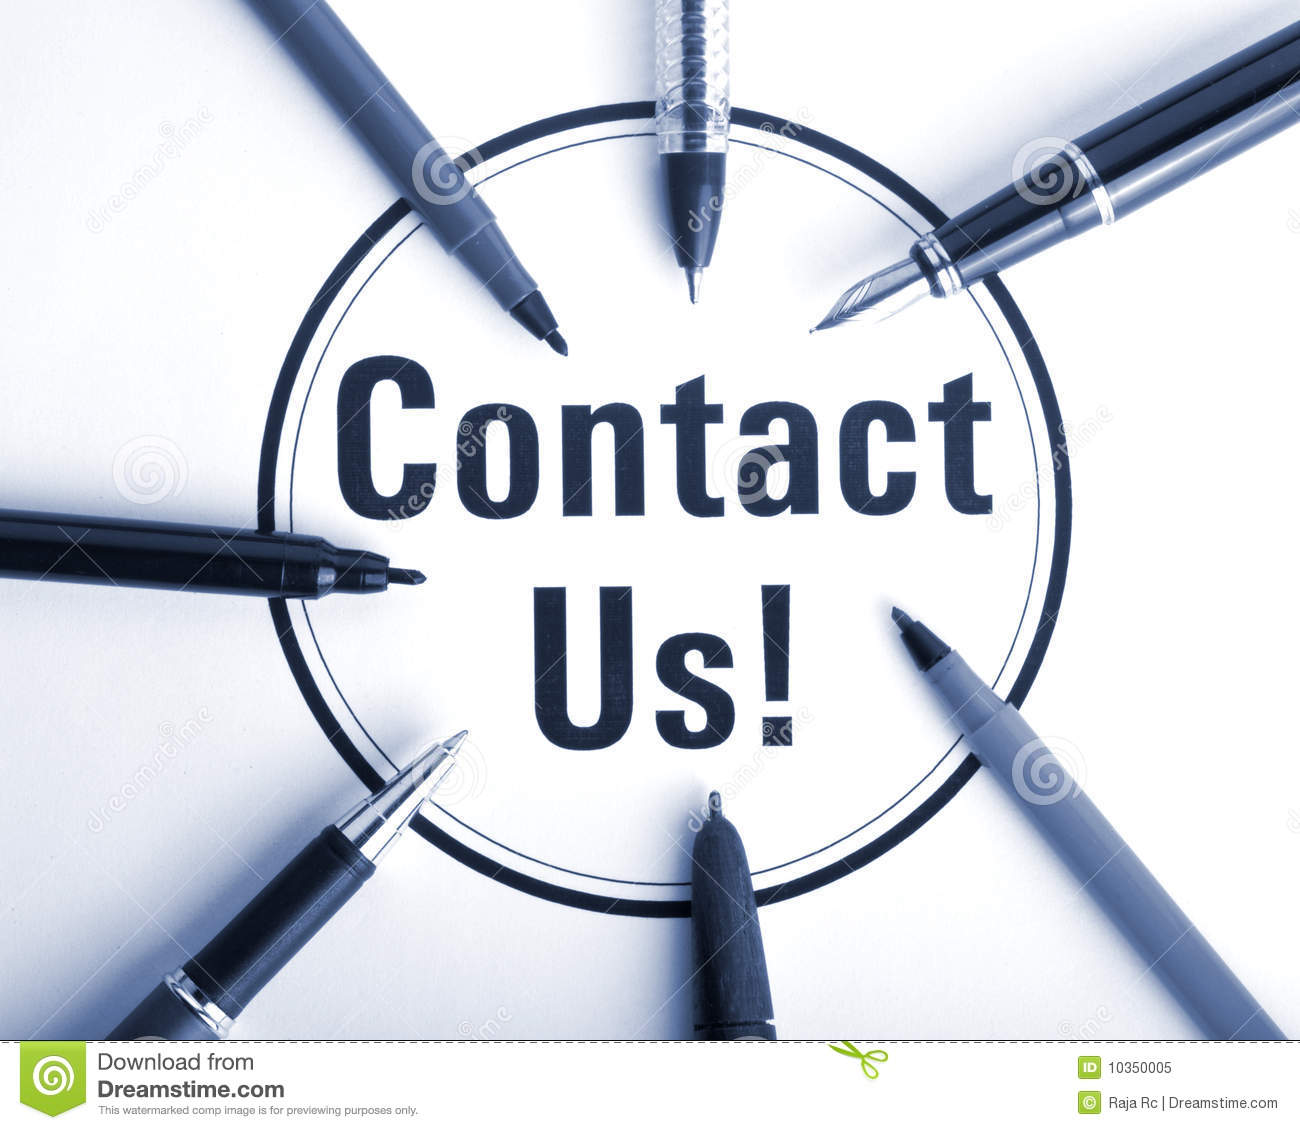 Contact Us: Contact Us Royalty Free Stock Photo